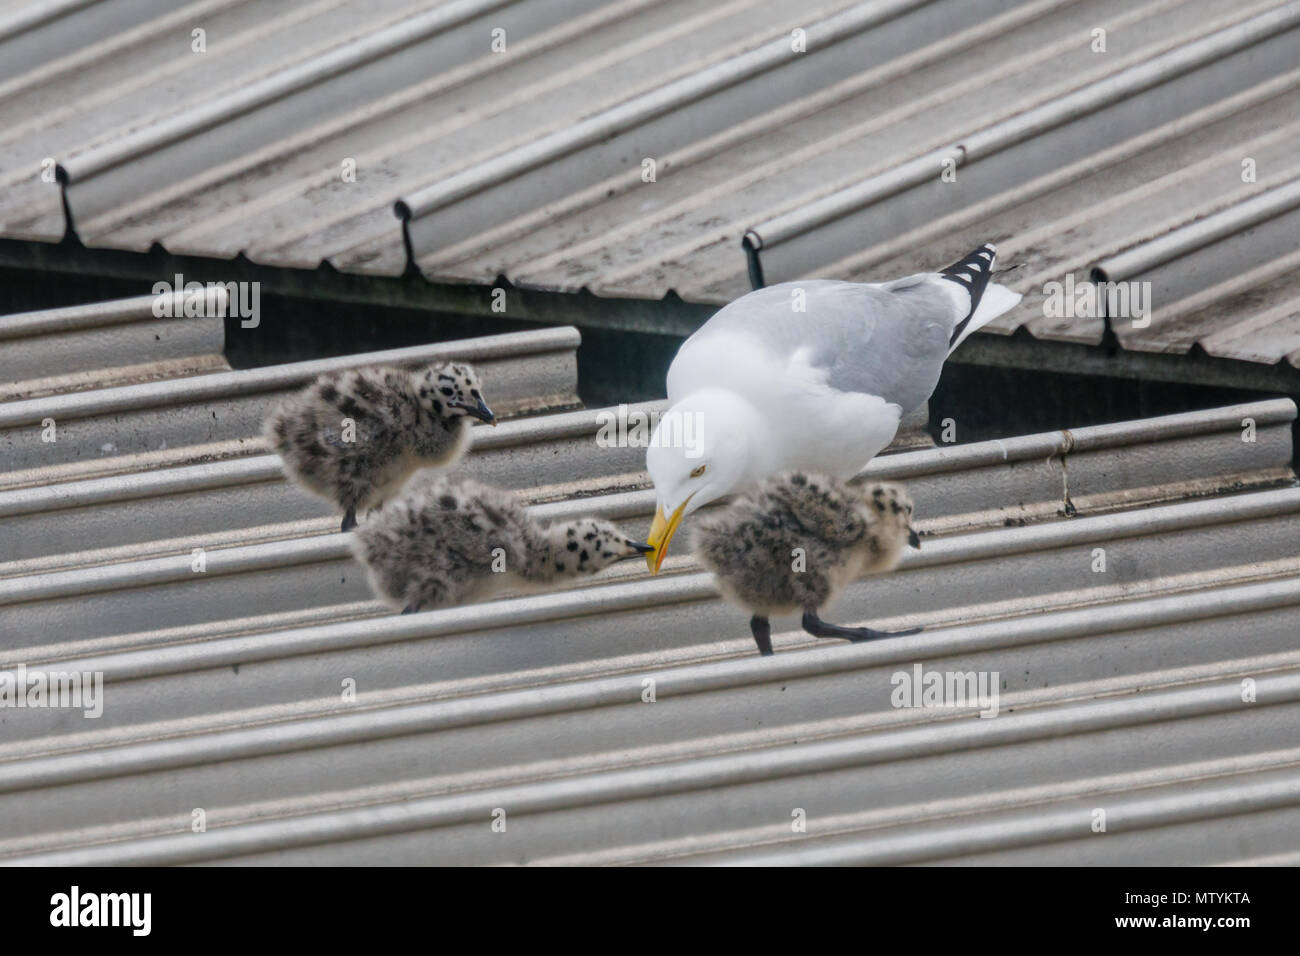 Forty Lane, Wembley Park, UK. 31st May 2018. Recently hatched Common Gull (Seagull) chicks on urban supermarket roof.  Common Gulls previously nested on sea cliffs in order to be close to their food supply, hence being frequently referred to as Seagulls. They now nest on urban roofs to take advantage of the waste we produce at landfill sites. Credit: amanda rose/Alamy Live News - Stock Image